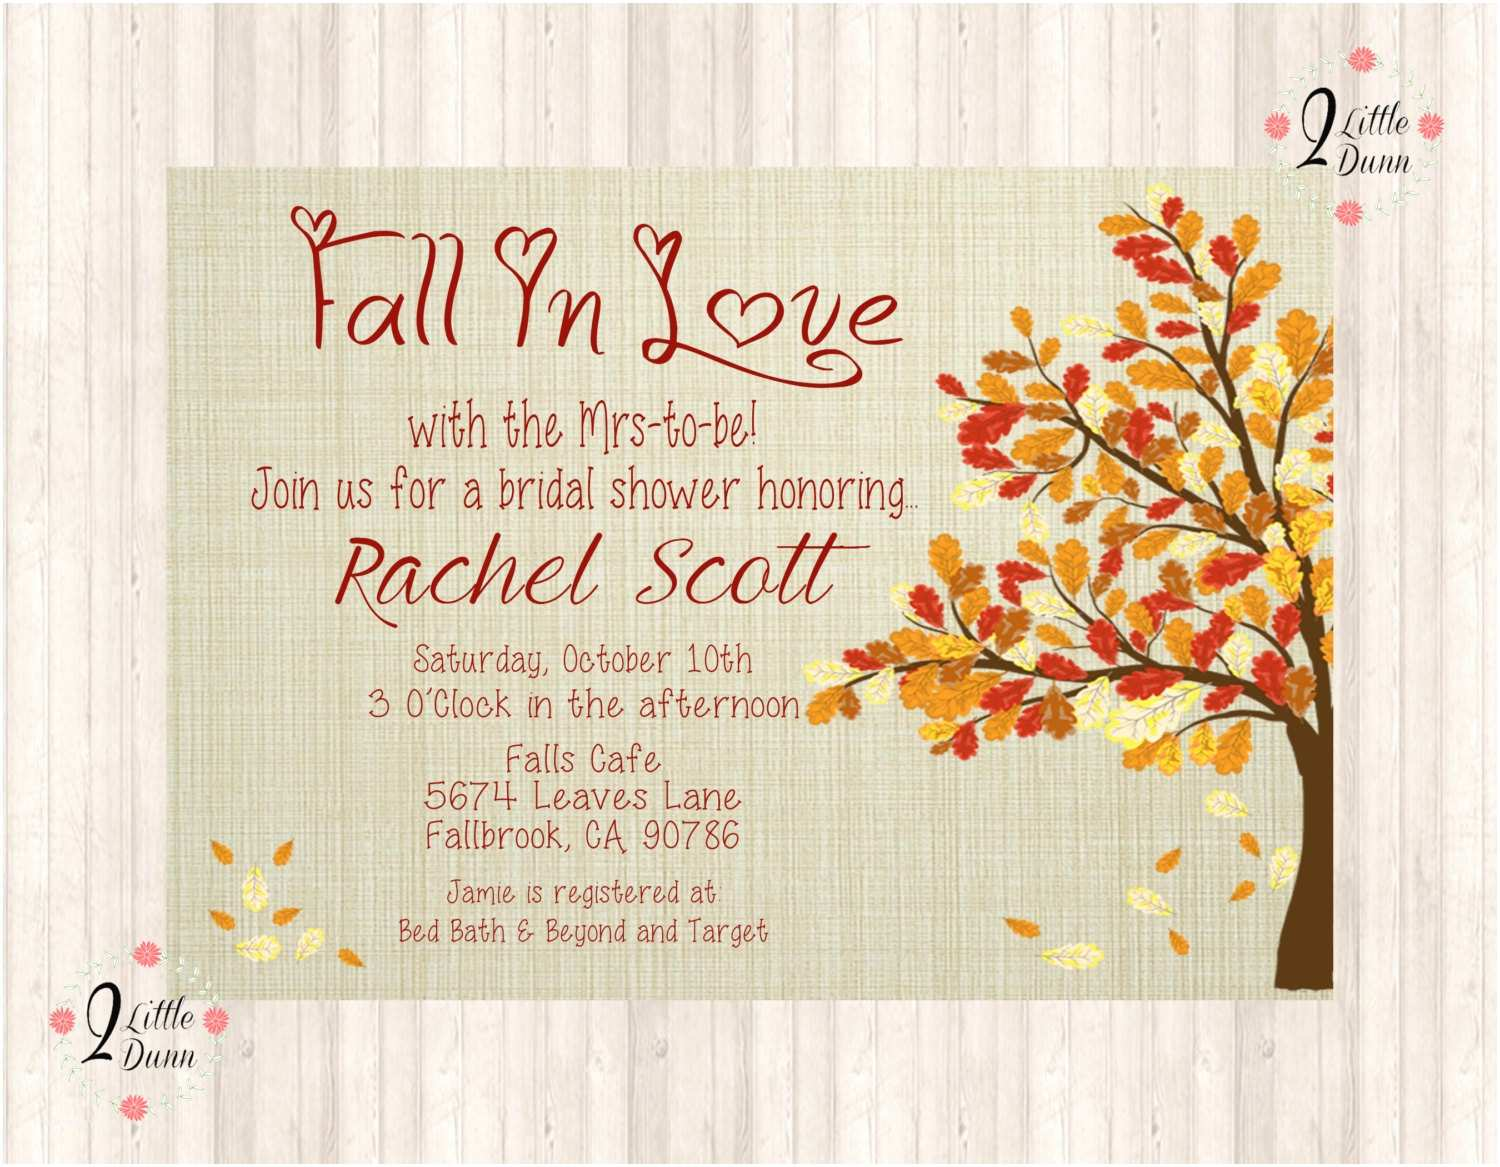 Fall In Love Wedding Invitations Fall In Love Bridal Shower Invitation Printable Digital